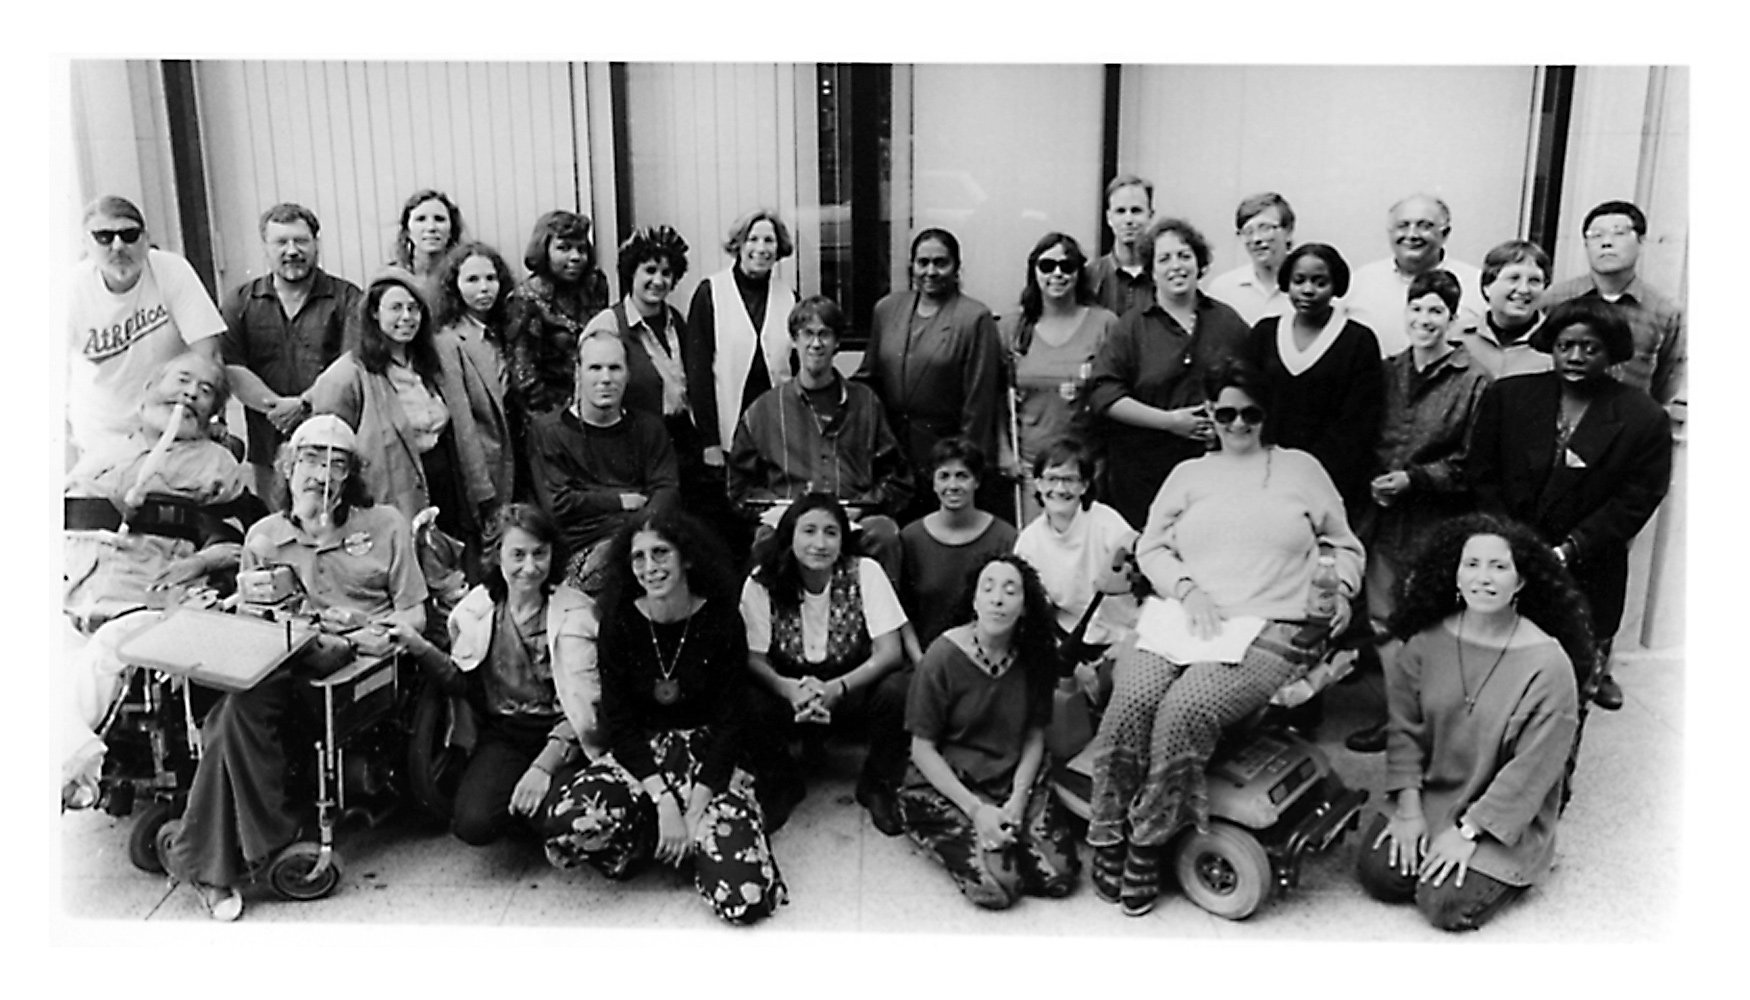 Group photo of disability rights activists